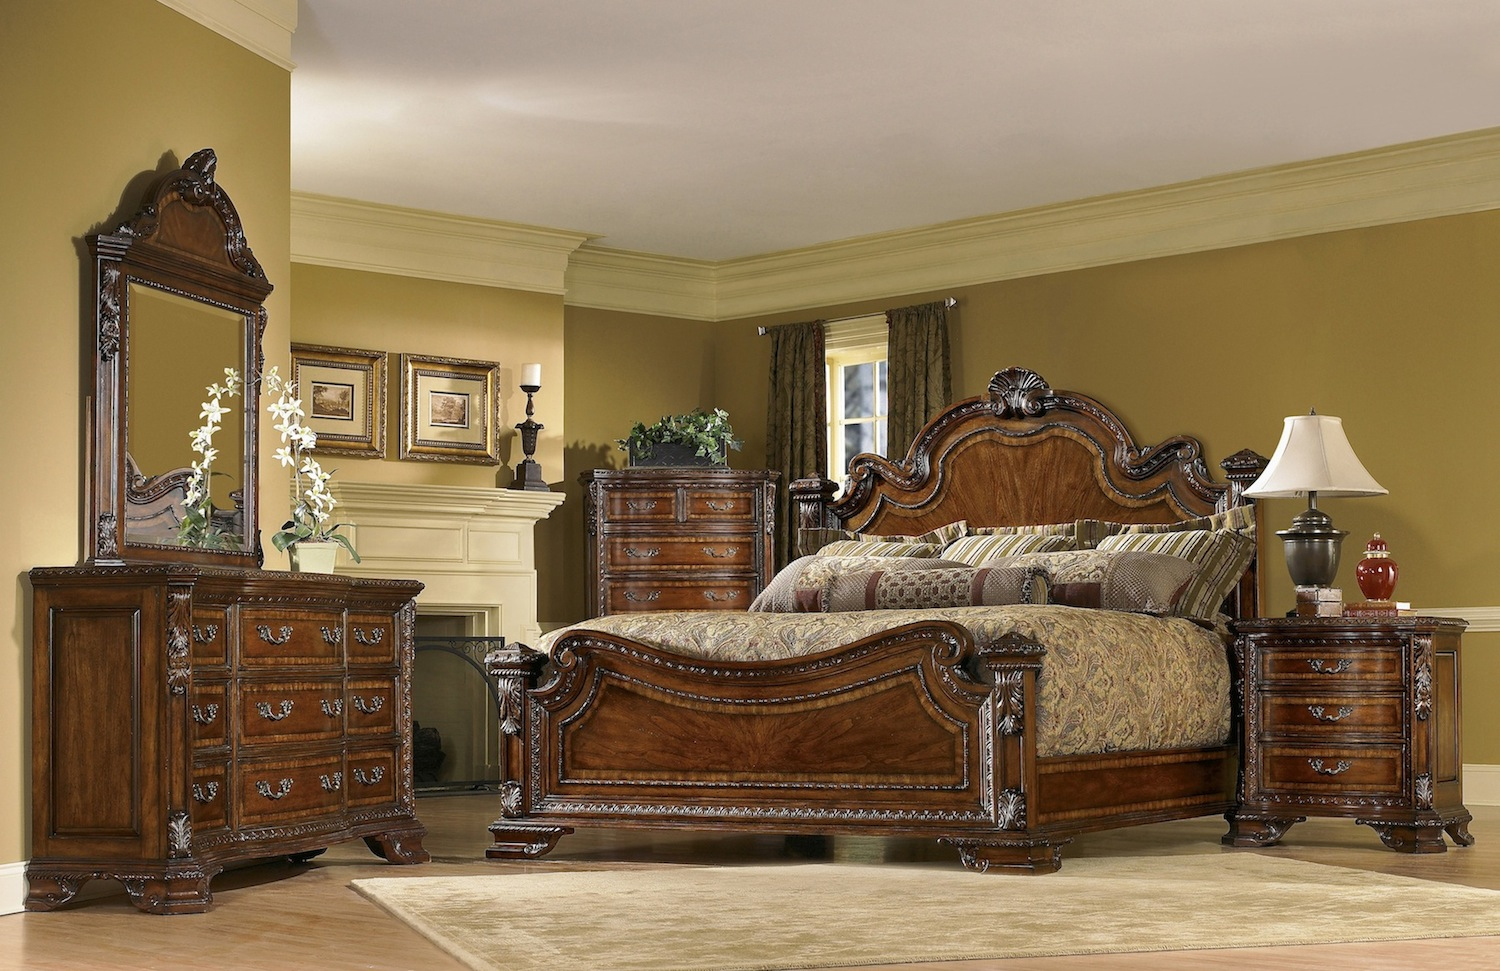 traditional european style bedroom furniture photo - 1